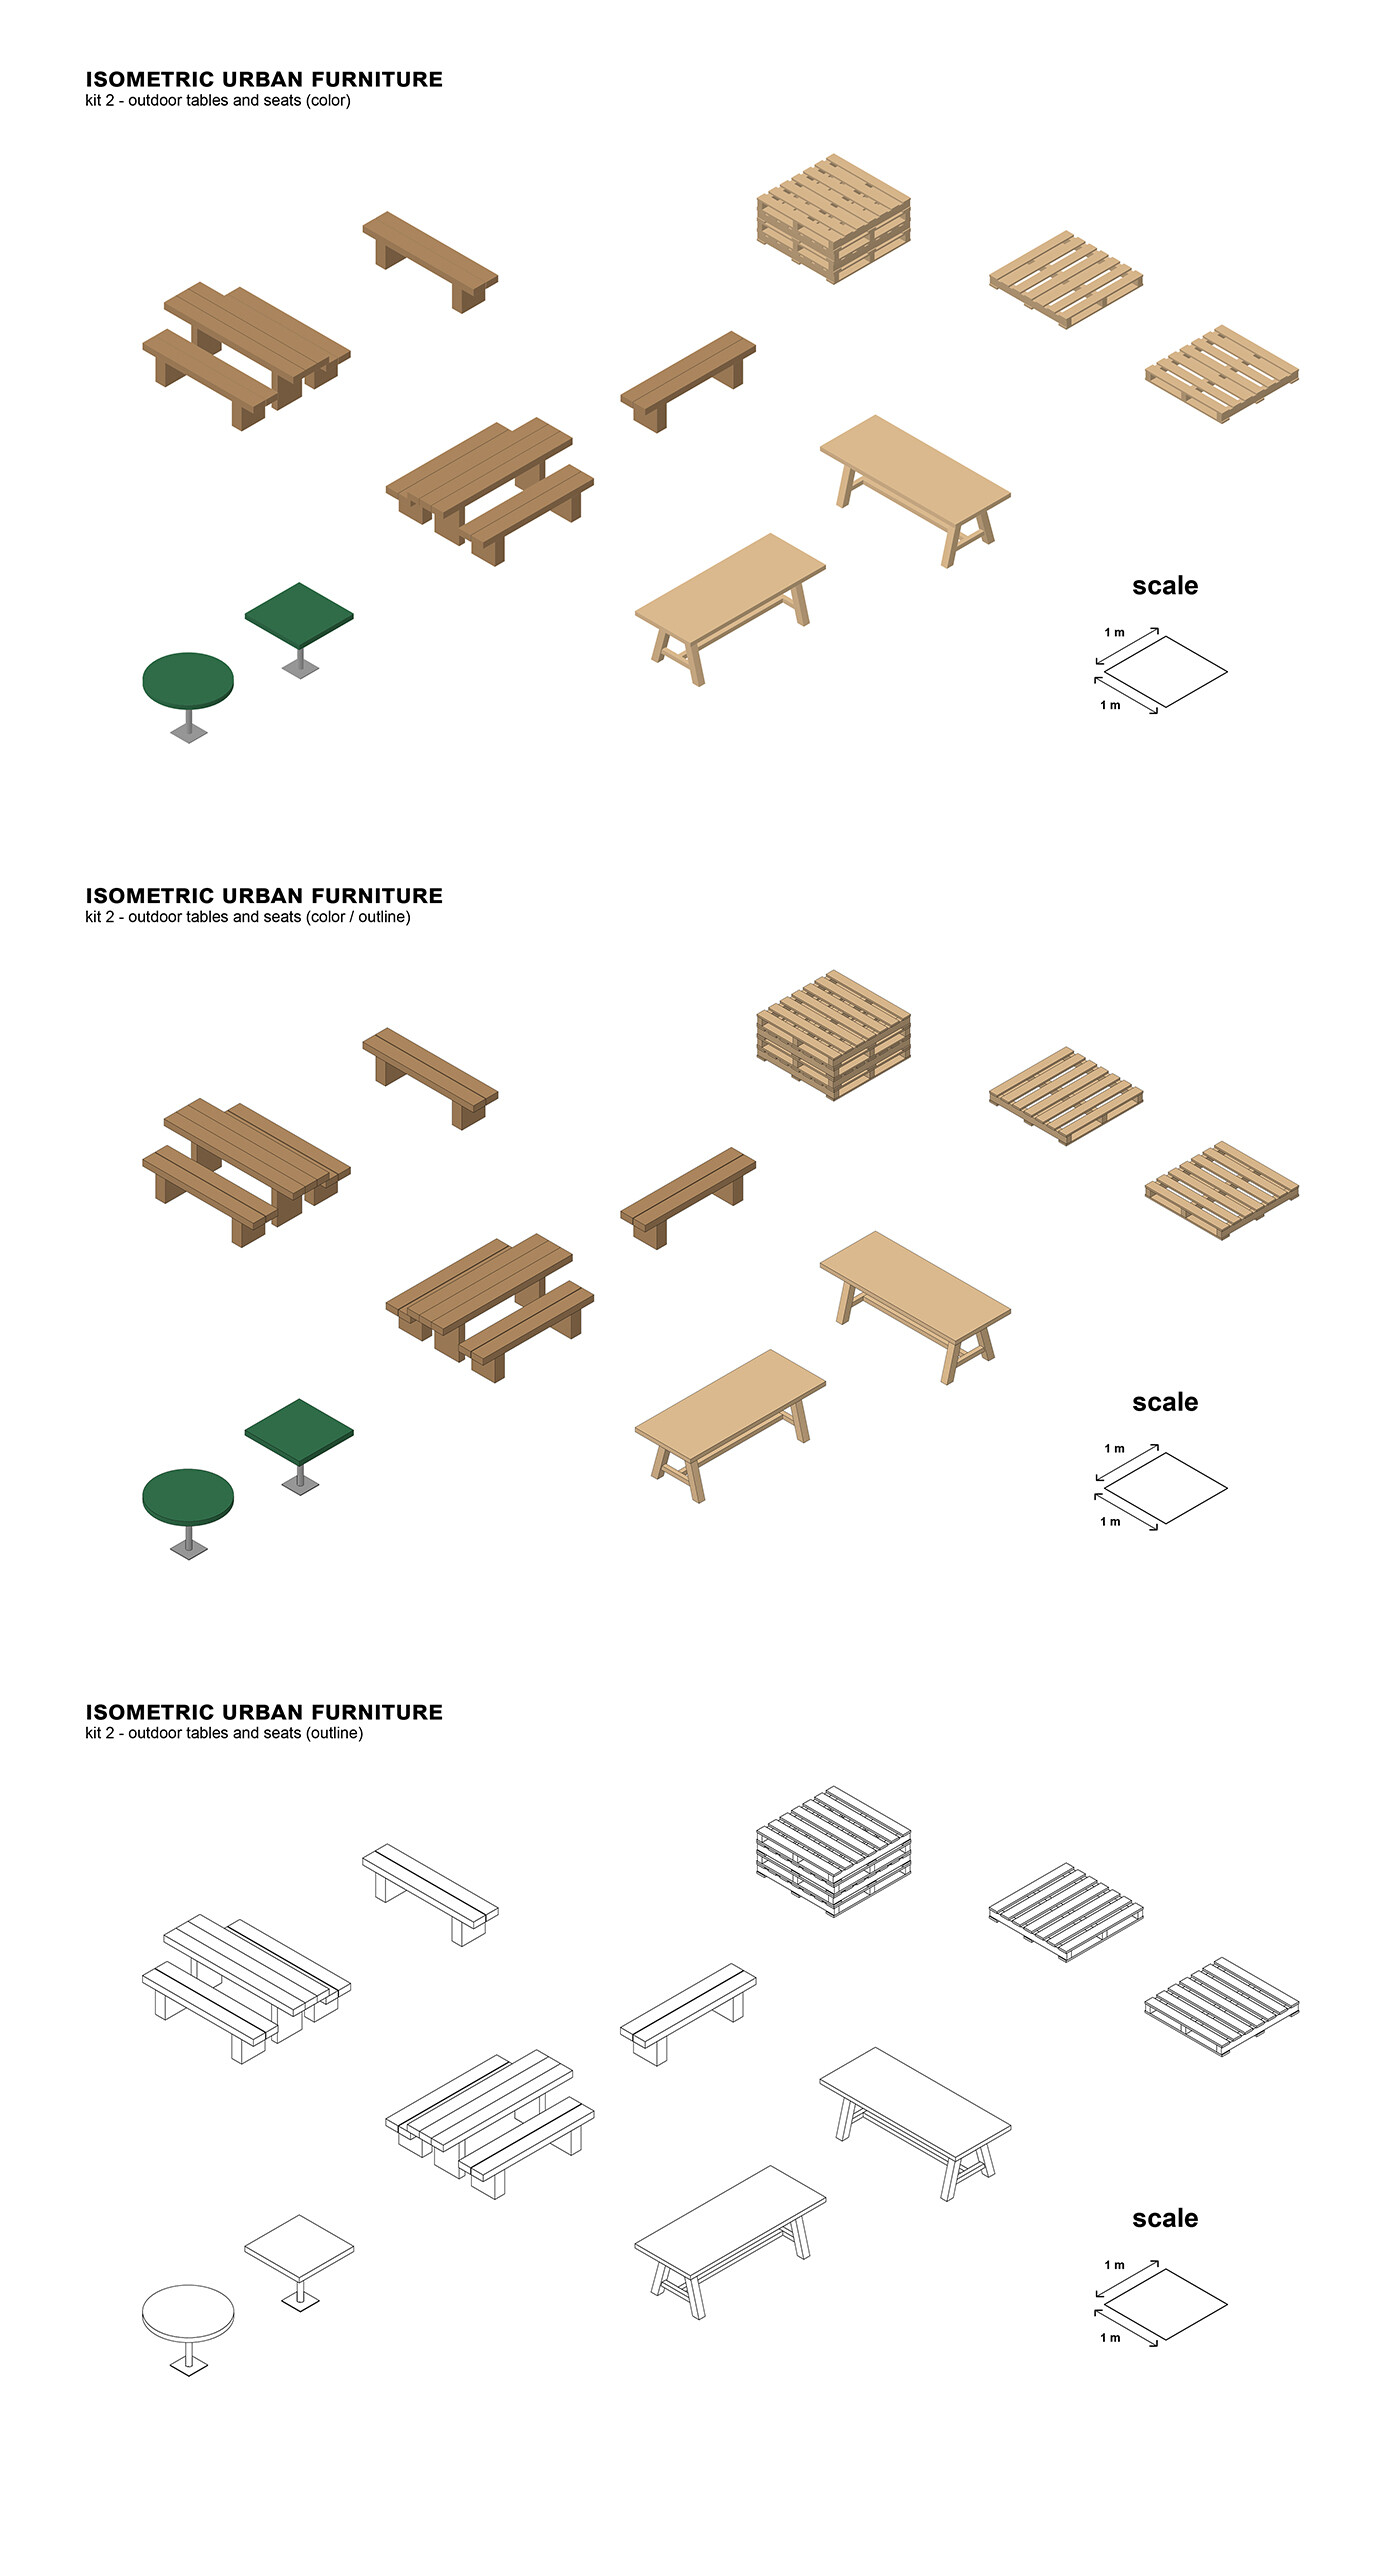 kit 2 - outdoor tables and seats